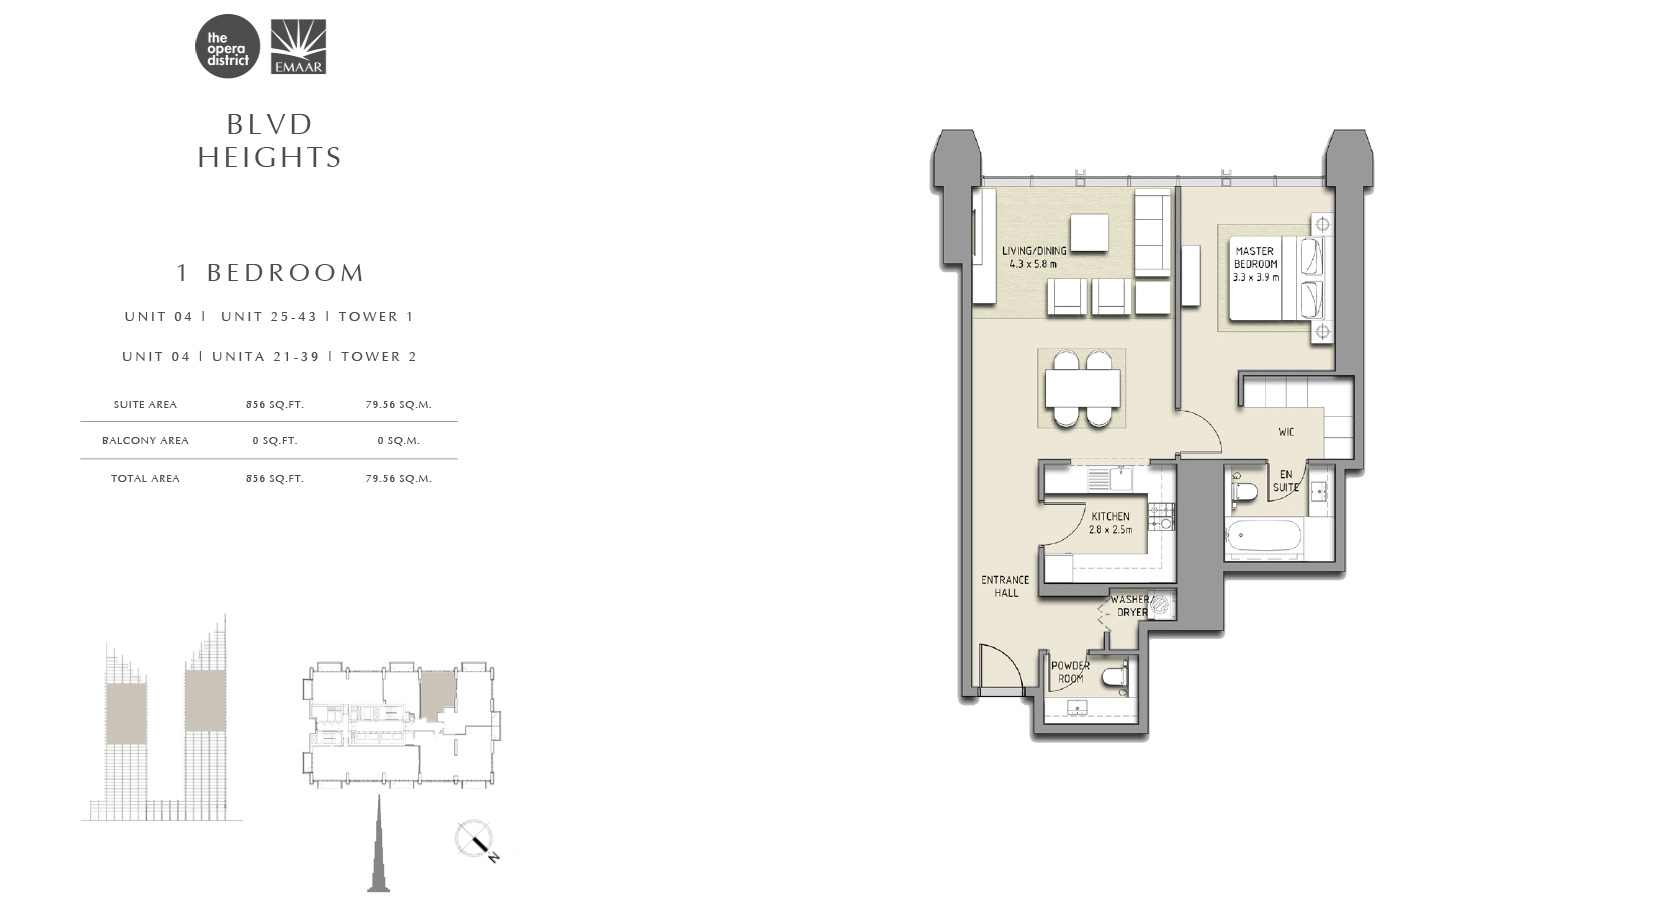 https://drehomes.com/wp-content/uploads/1-Bedroom-Unit-4-856SqFt.jpg